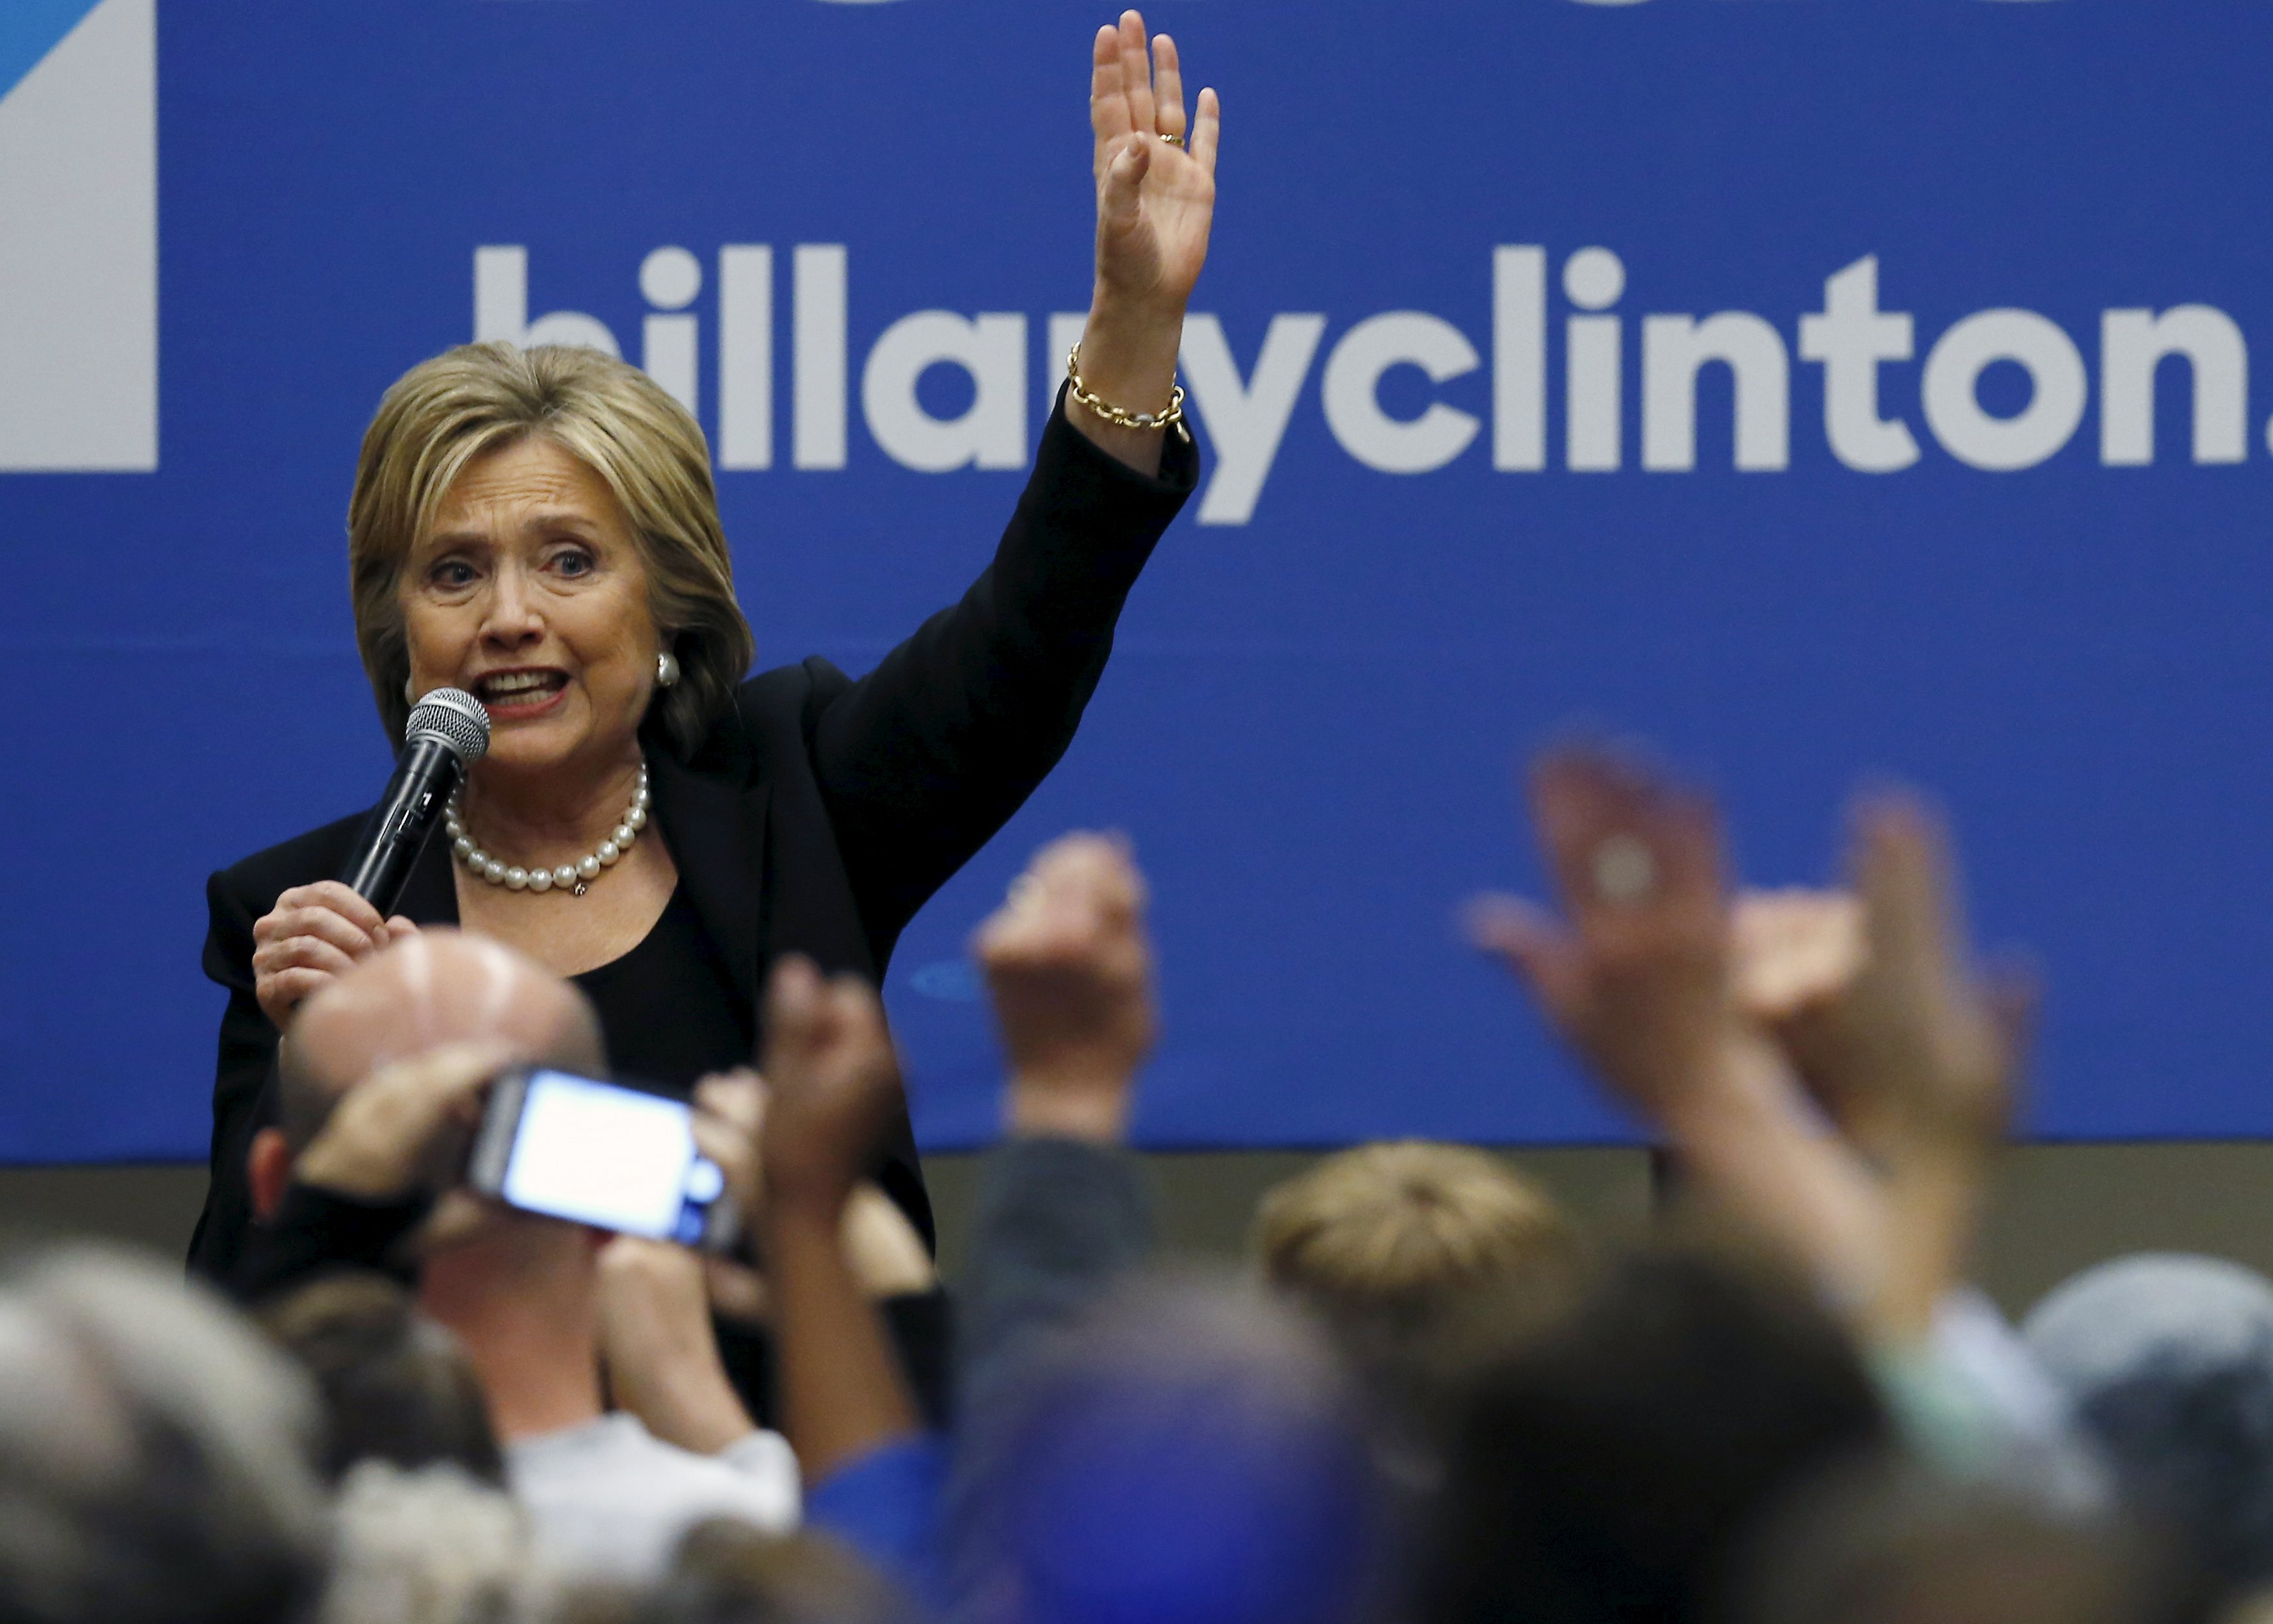 US Democratic presidential candidate Hillary Clinton speaks to her supporters after the 2016 US Democratic presidential candidates debate at Drake University in Des Moines, Iowa, United States, November 14, 2015. Photo: Reuters